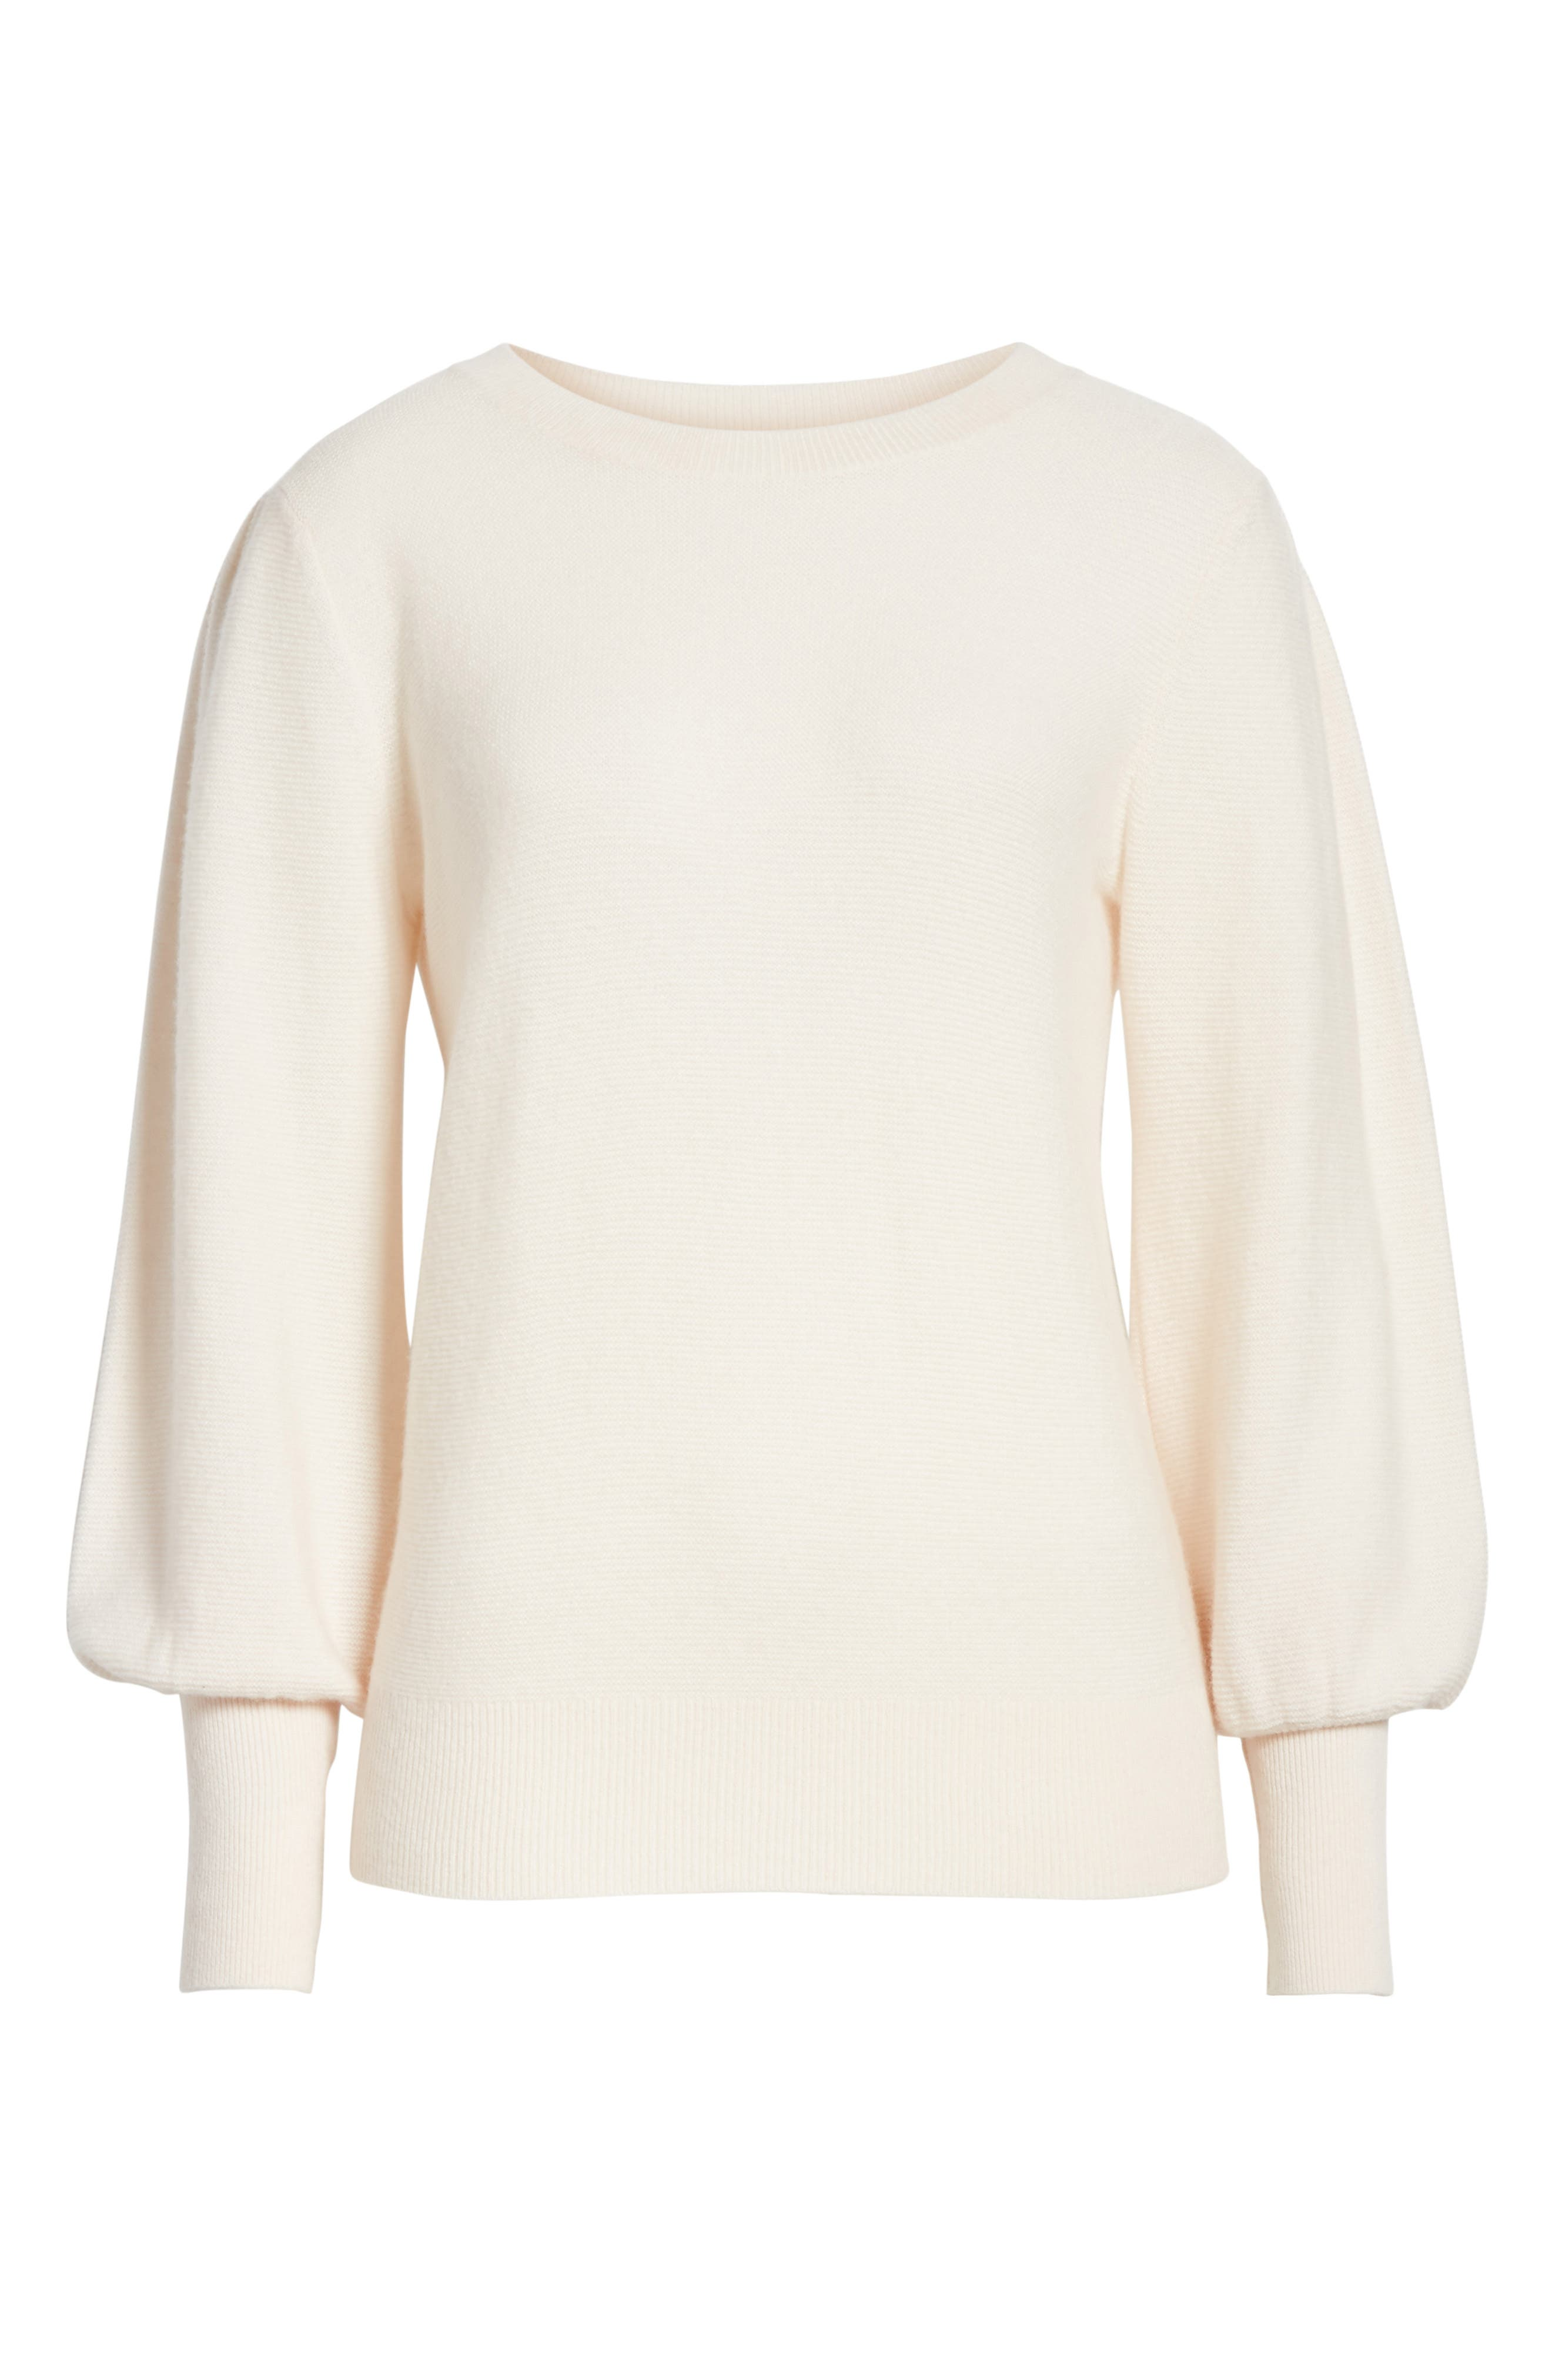 Noely Wool and Cashmere Sweater,                             Alternate thumbnail 12, color,